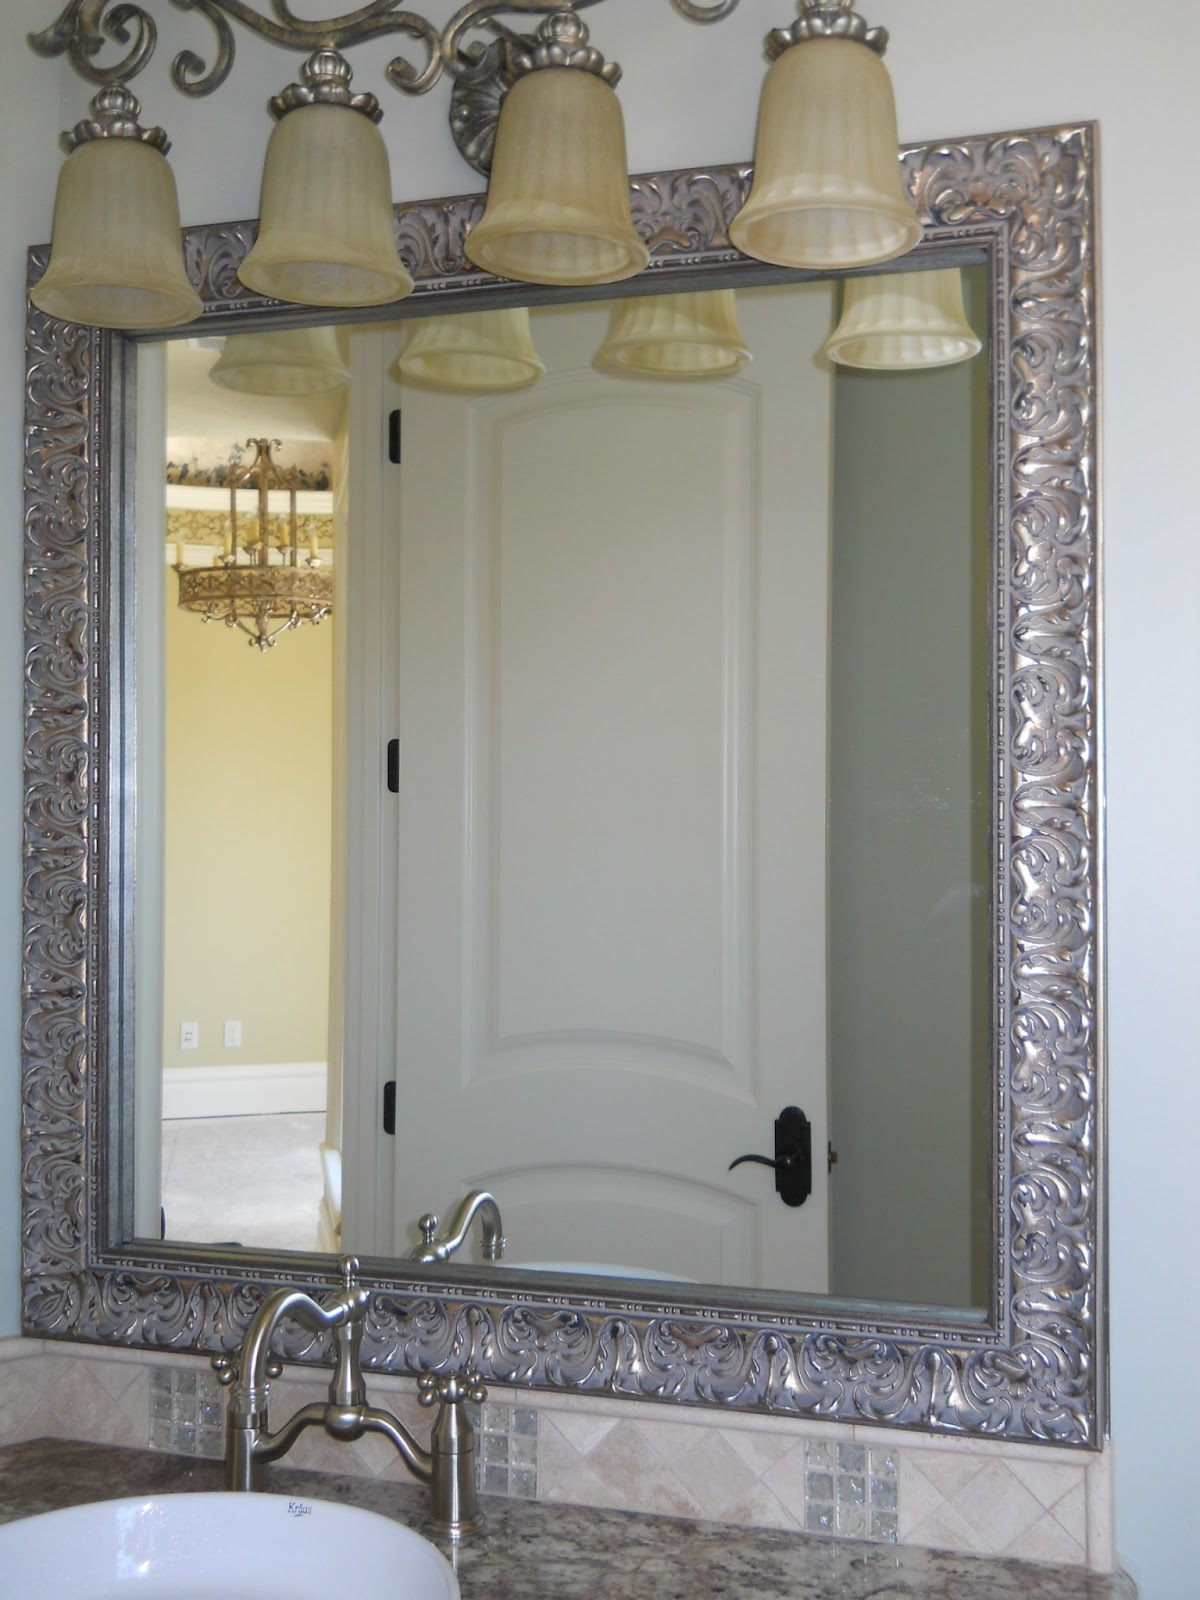 Reflected Design Bathroom Mirror Frame Kit